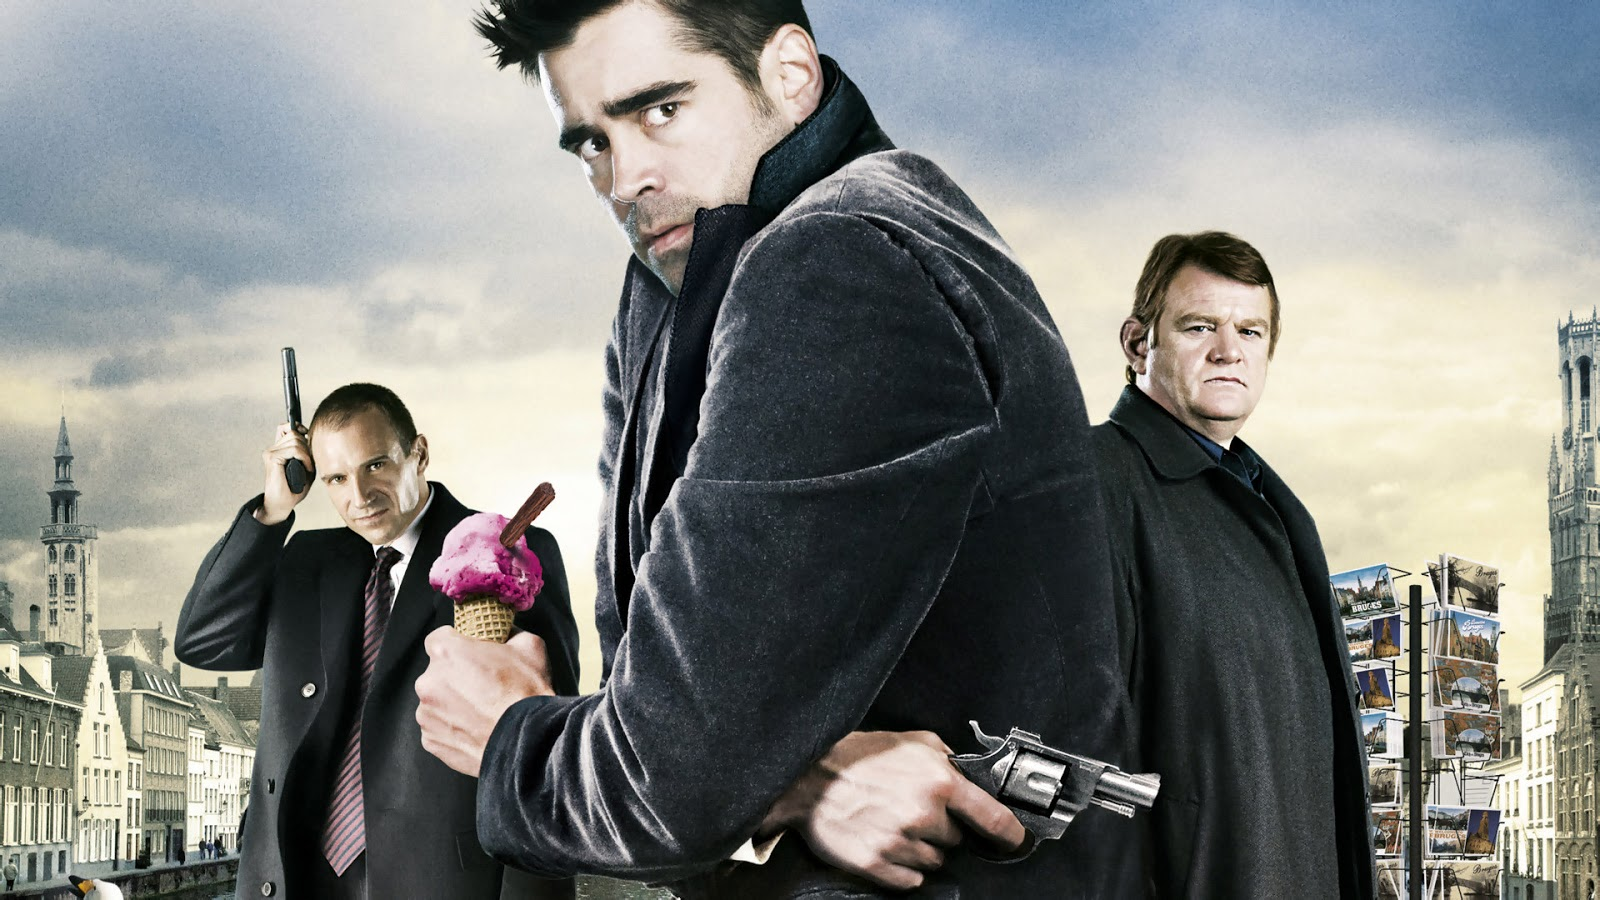 andrew lawrence s movie blog in bruges a movie review by andrew andrew lawrence s movie blog